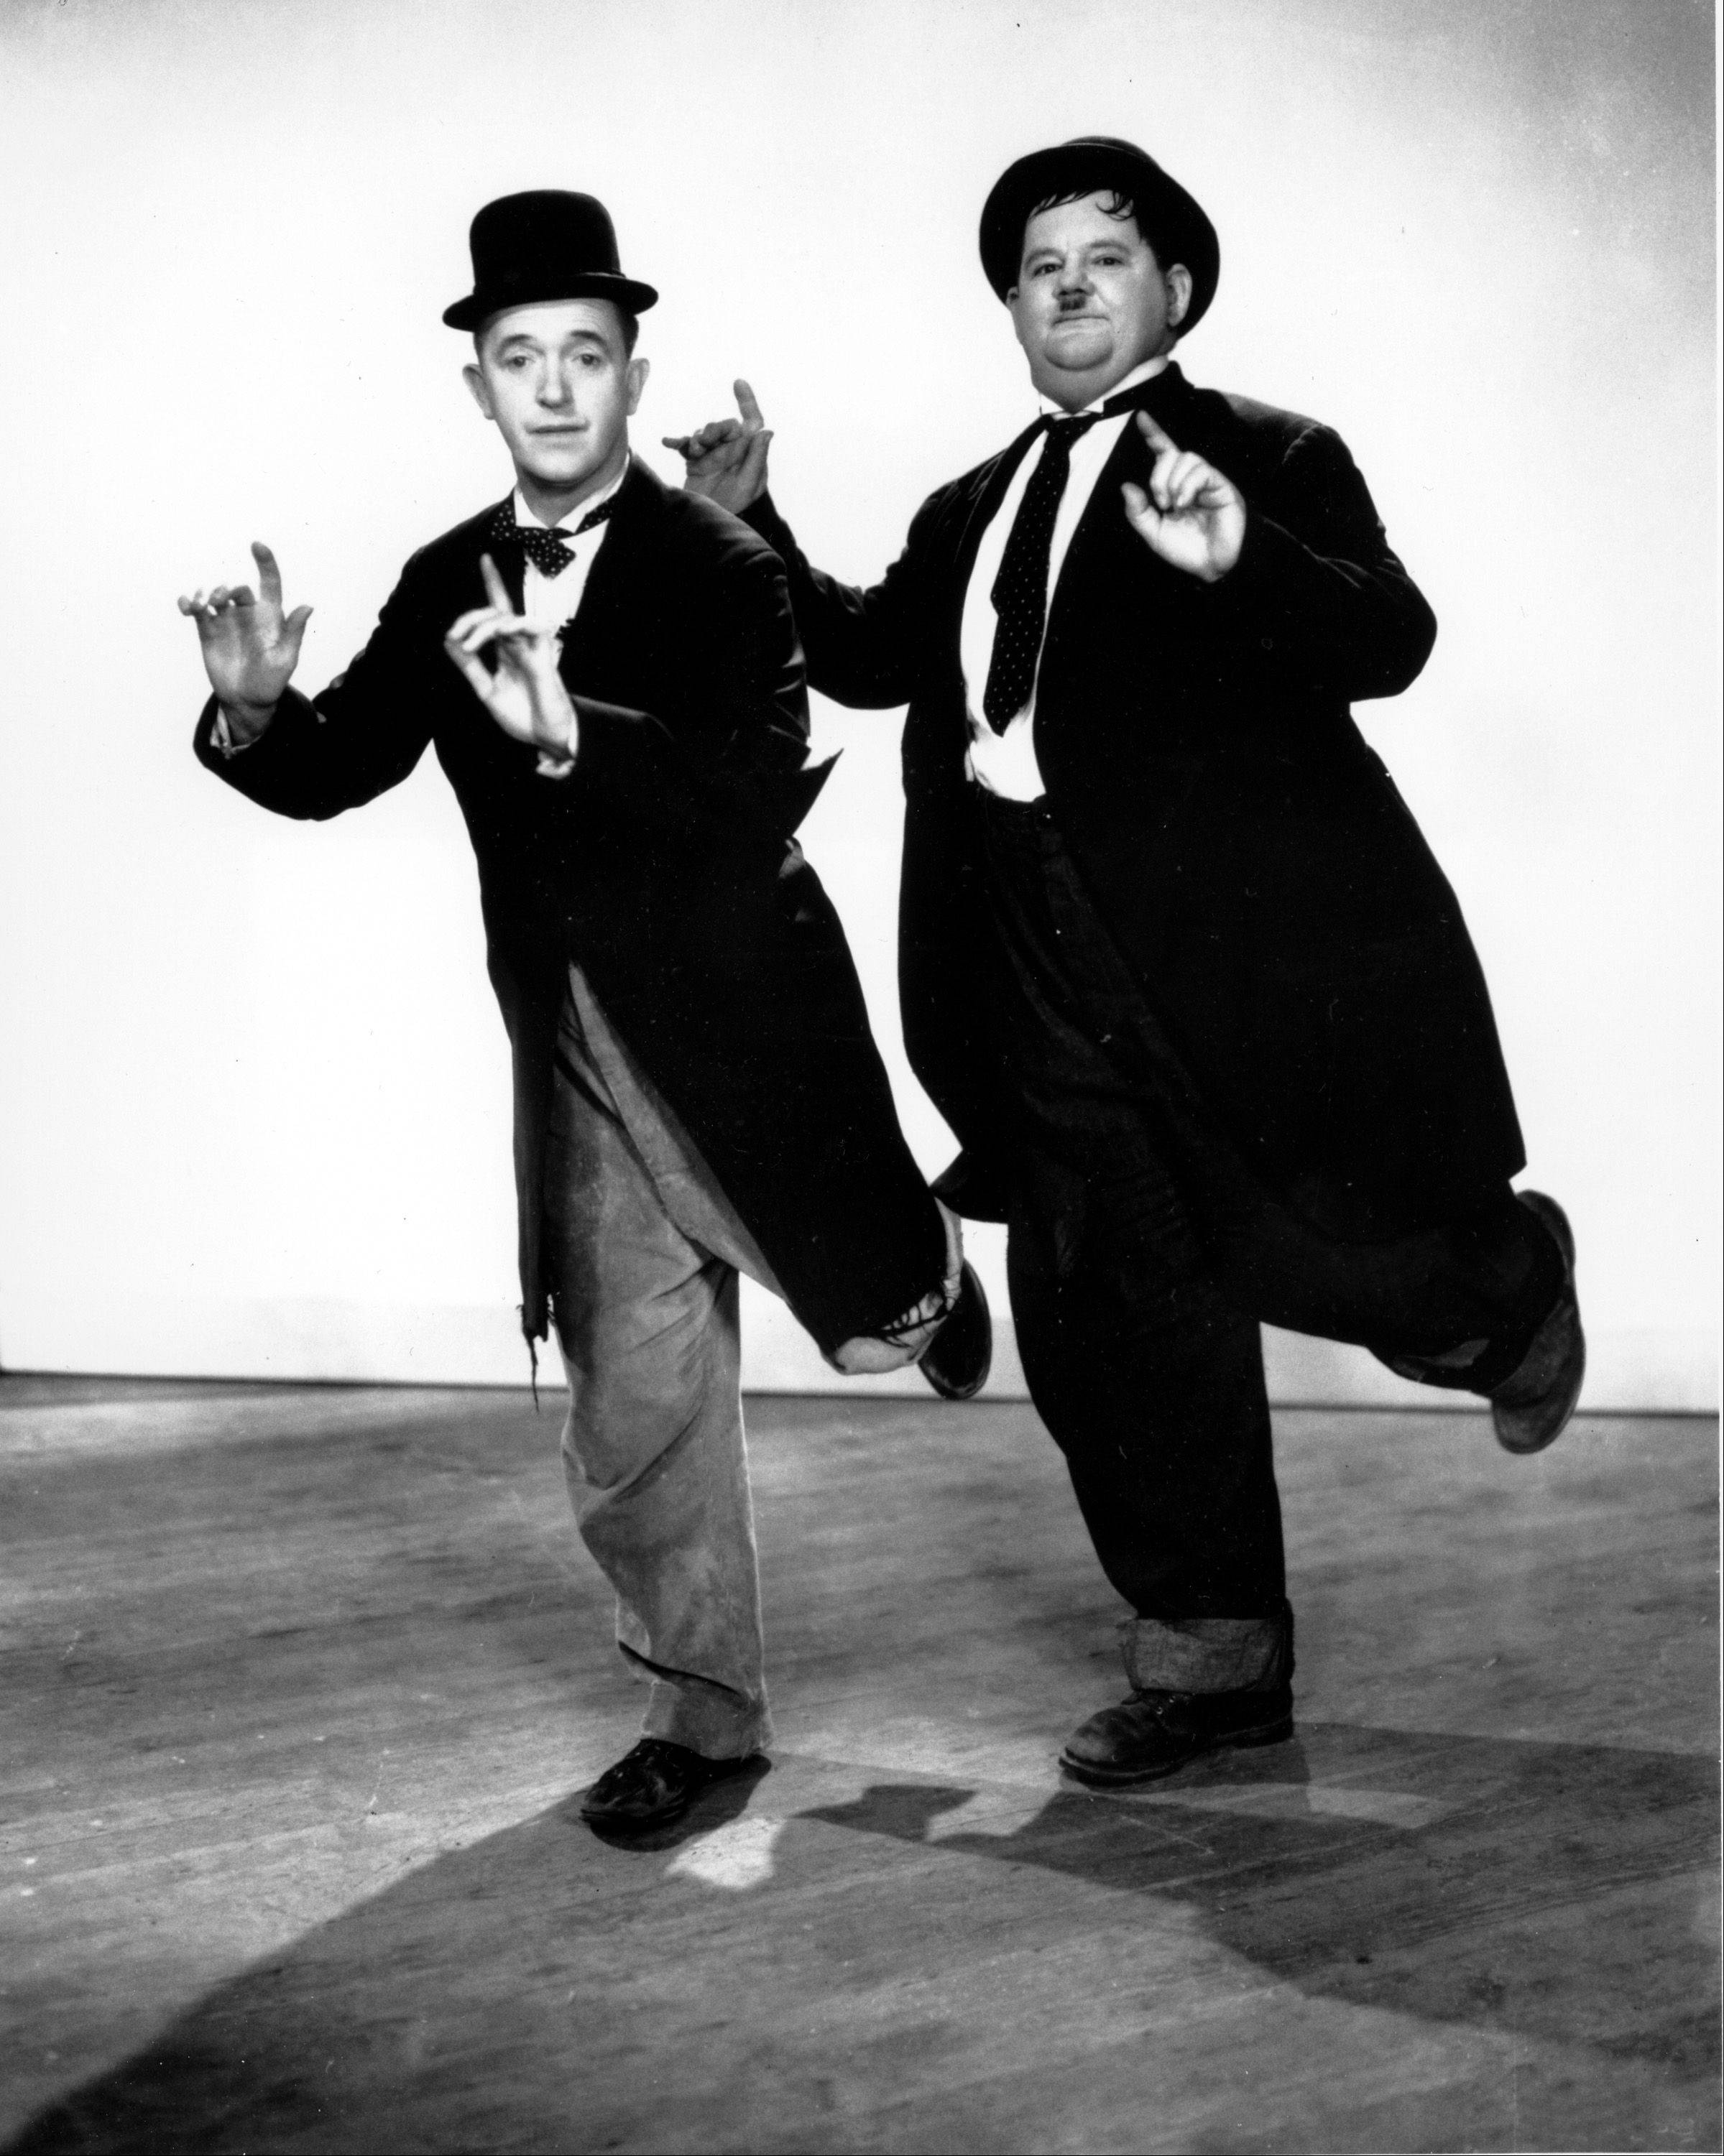 A new DVD collection celebrates classic comedy teams, like Stan Laurel and Oliver Hardy.